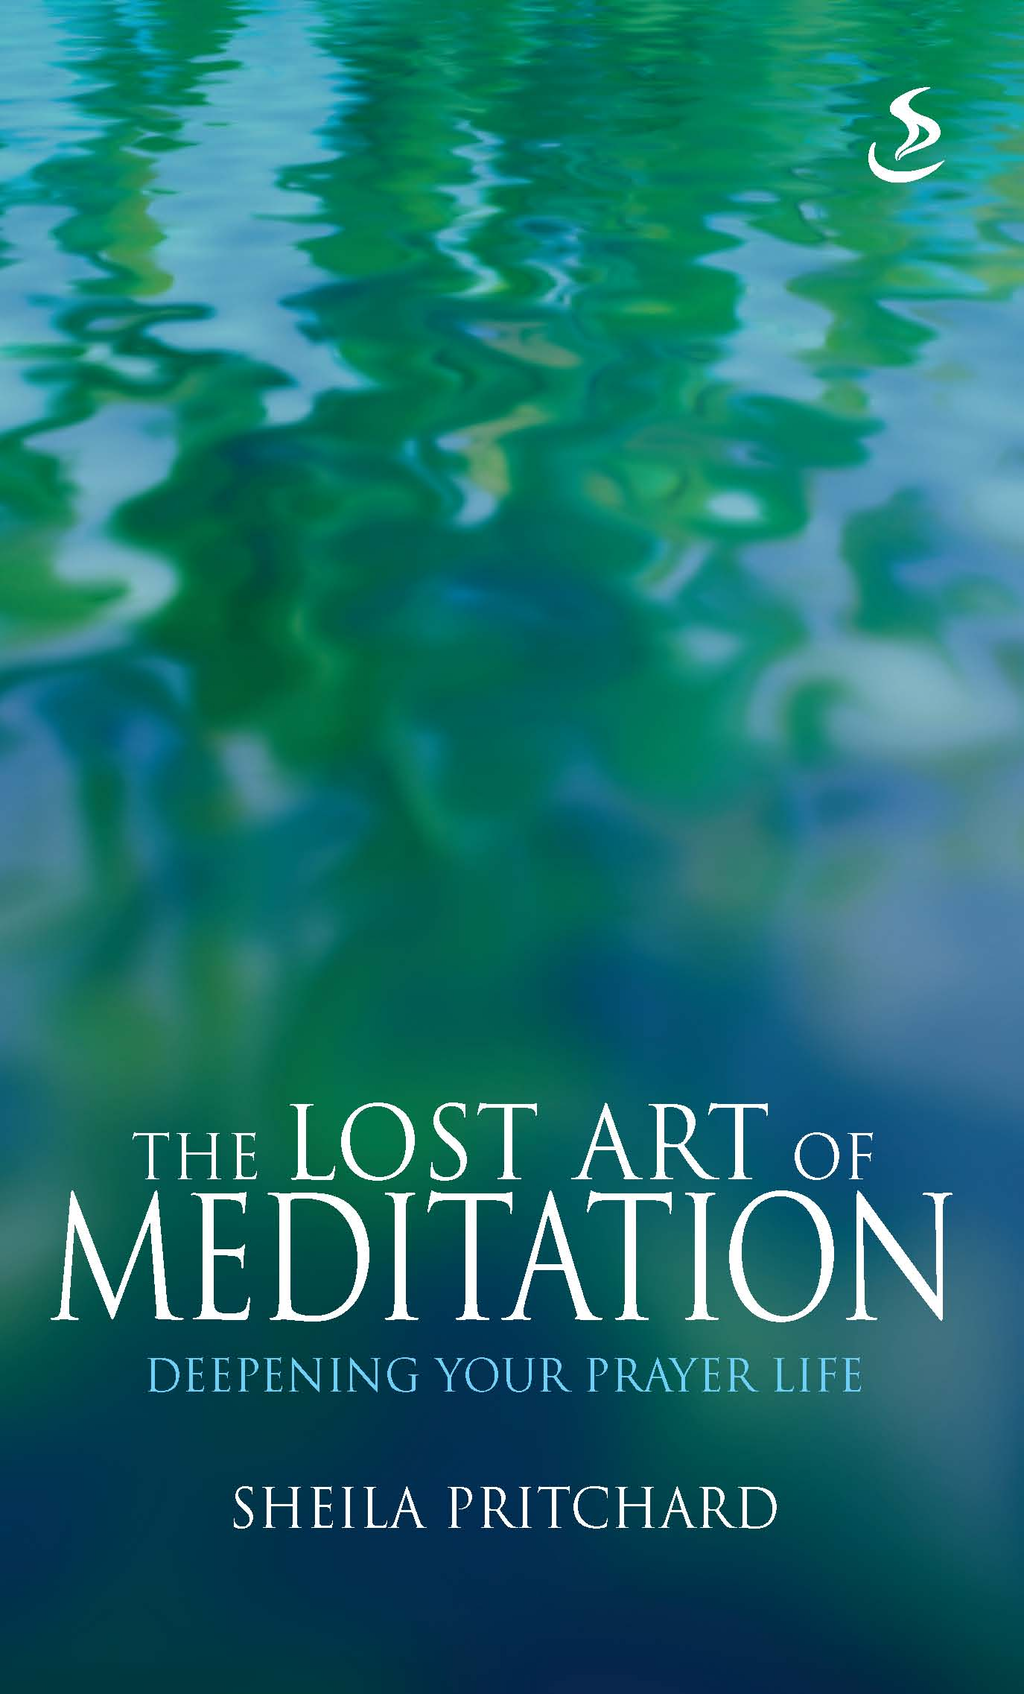 The Lost Art of Meditation: Deepening your prayer life By: Sheila Pritchard